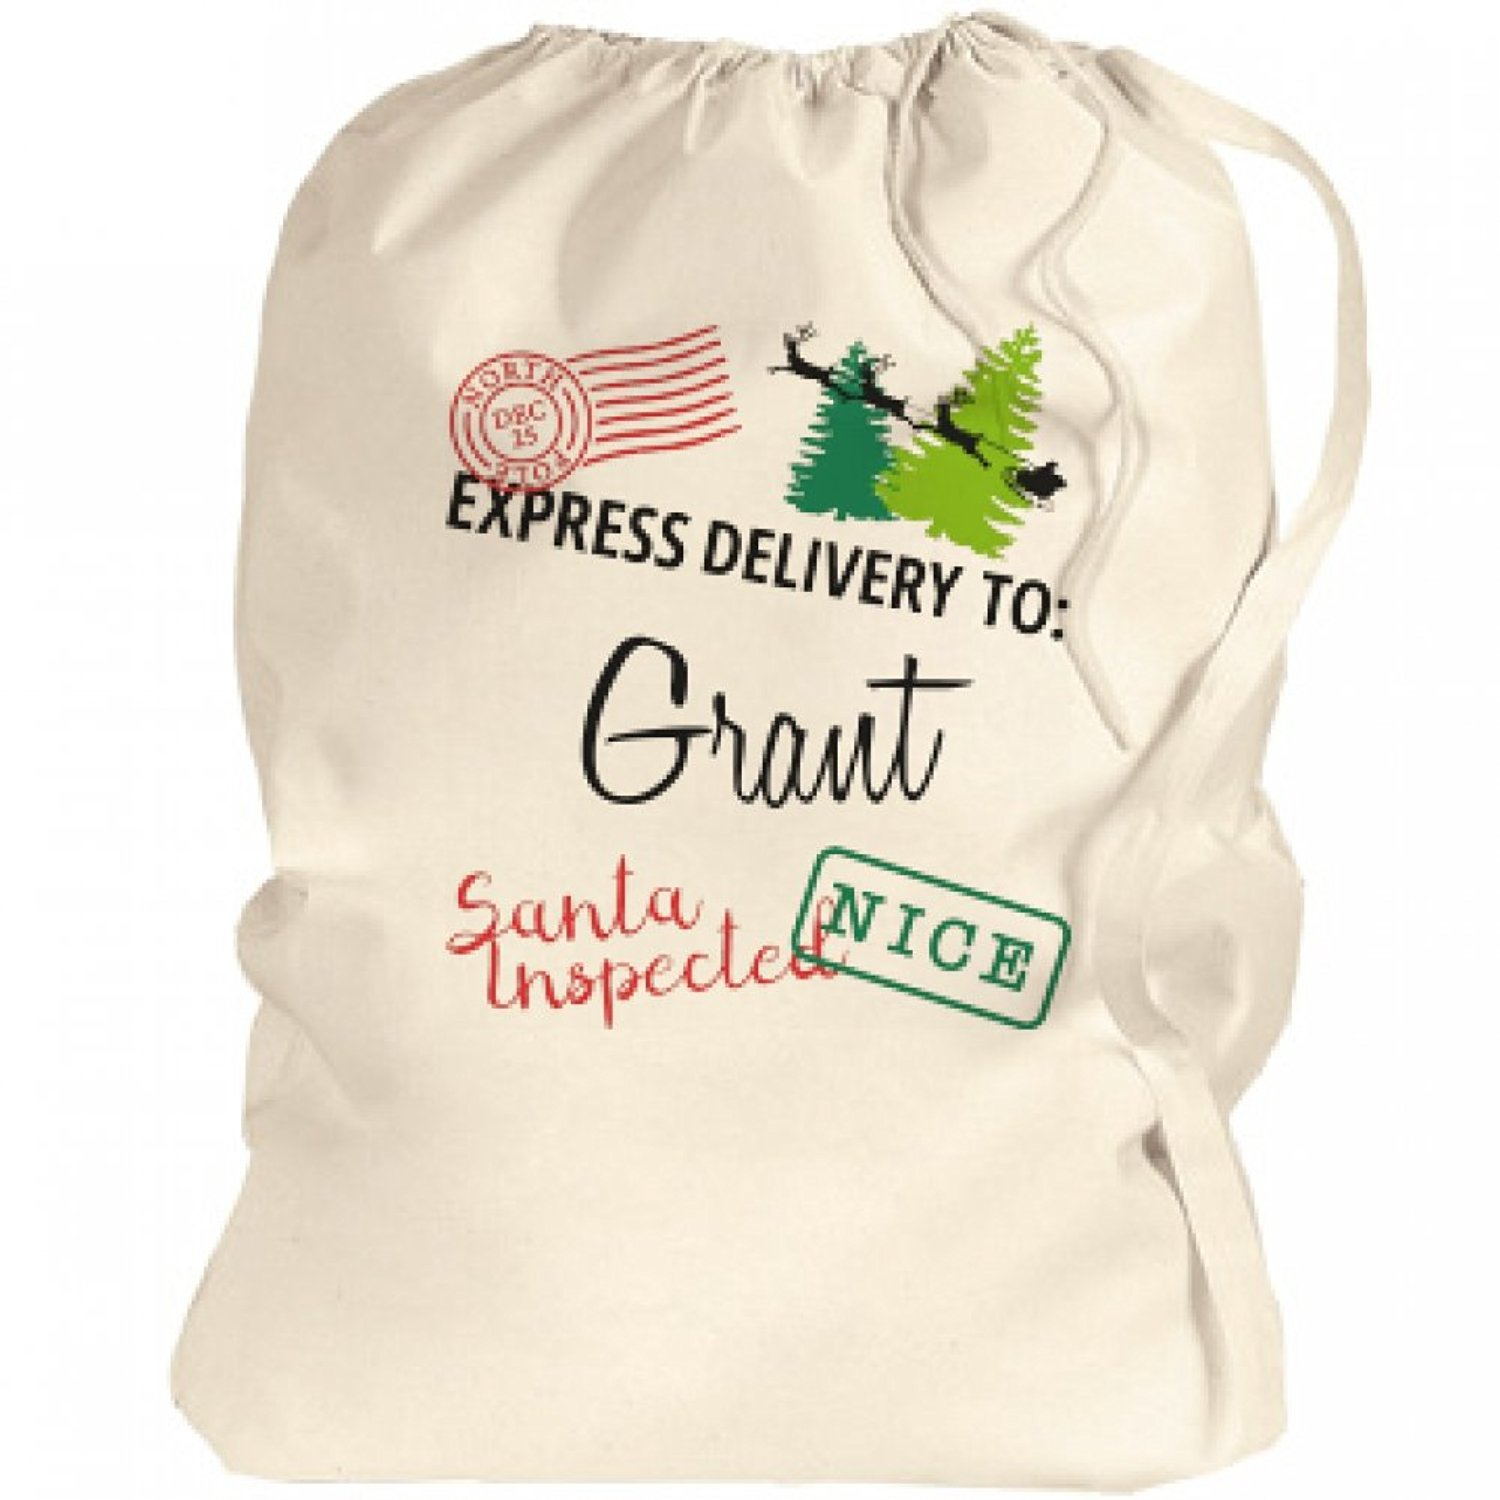 Christmas Express Delivery To Grant Santa Bag: Canvas Laundry Bag